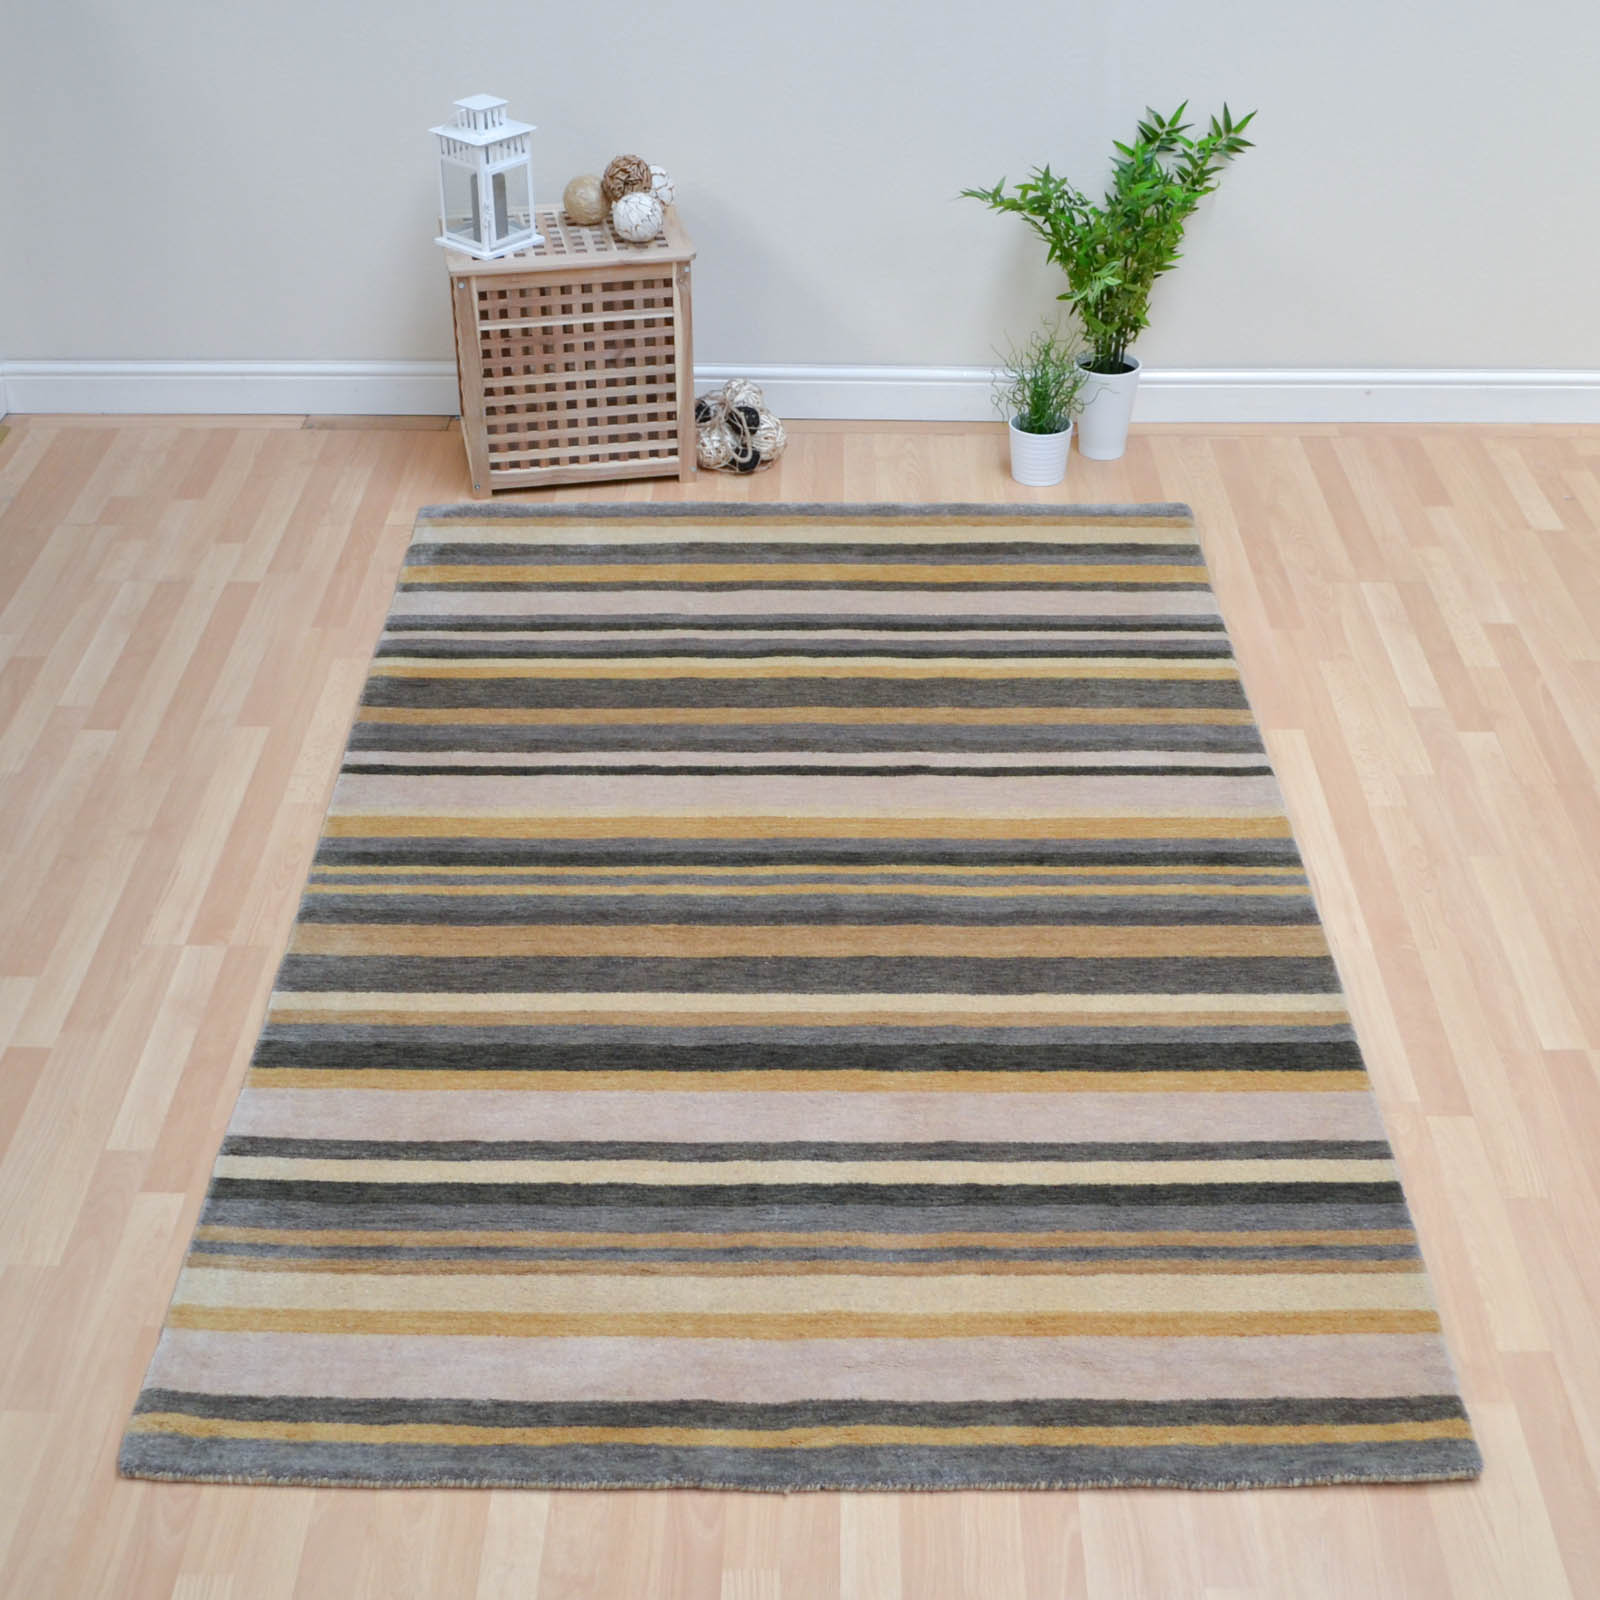 Regatta Collection Rugs Newport - Pure Wool